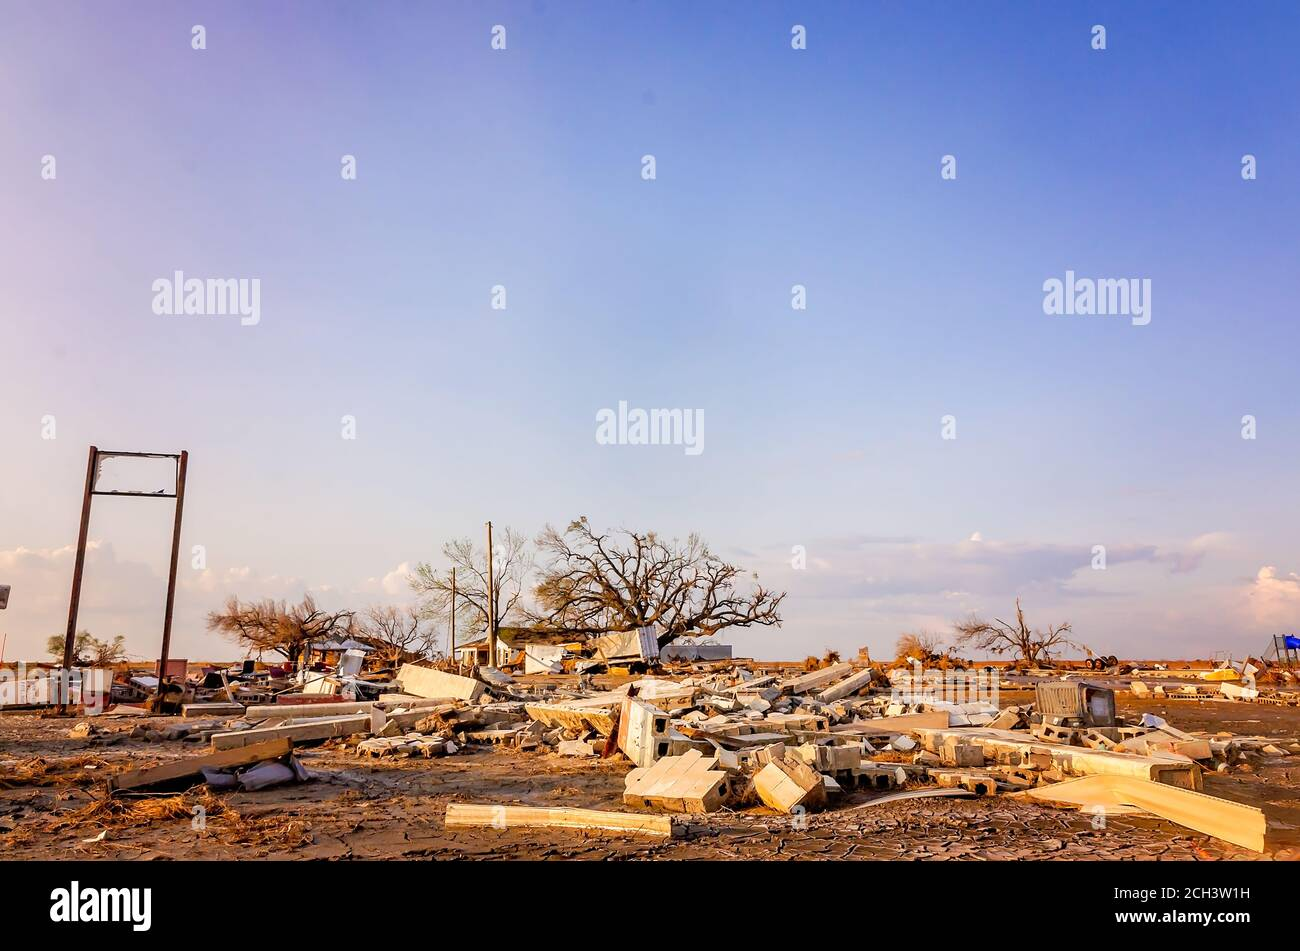 Debris from Hurricane Laura litters the streets, Sept. 11, 2020, in Cameron, Louisiana. The town sustained heavy damage in the Category 4 hurricane. Stock Photo